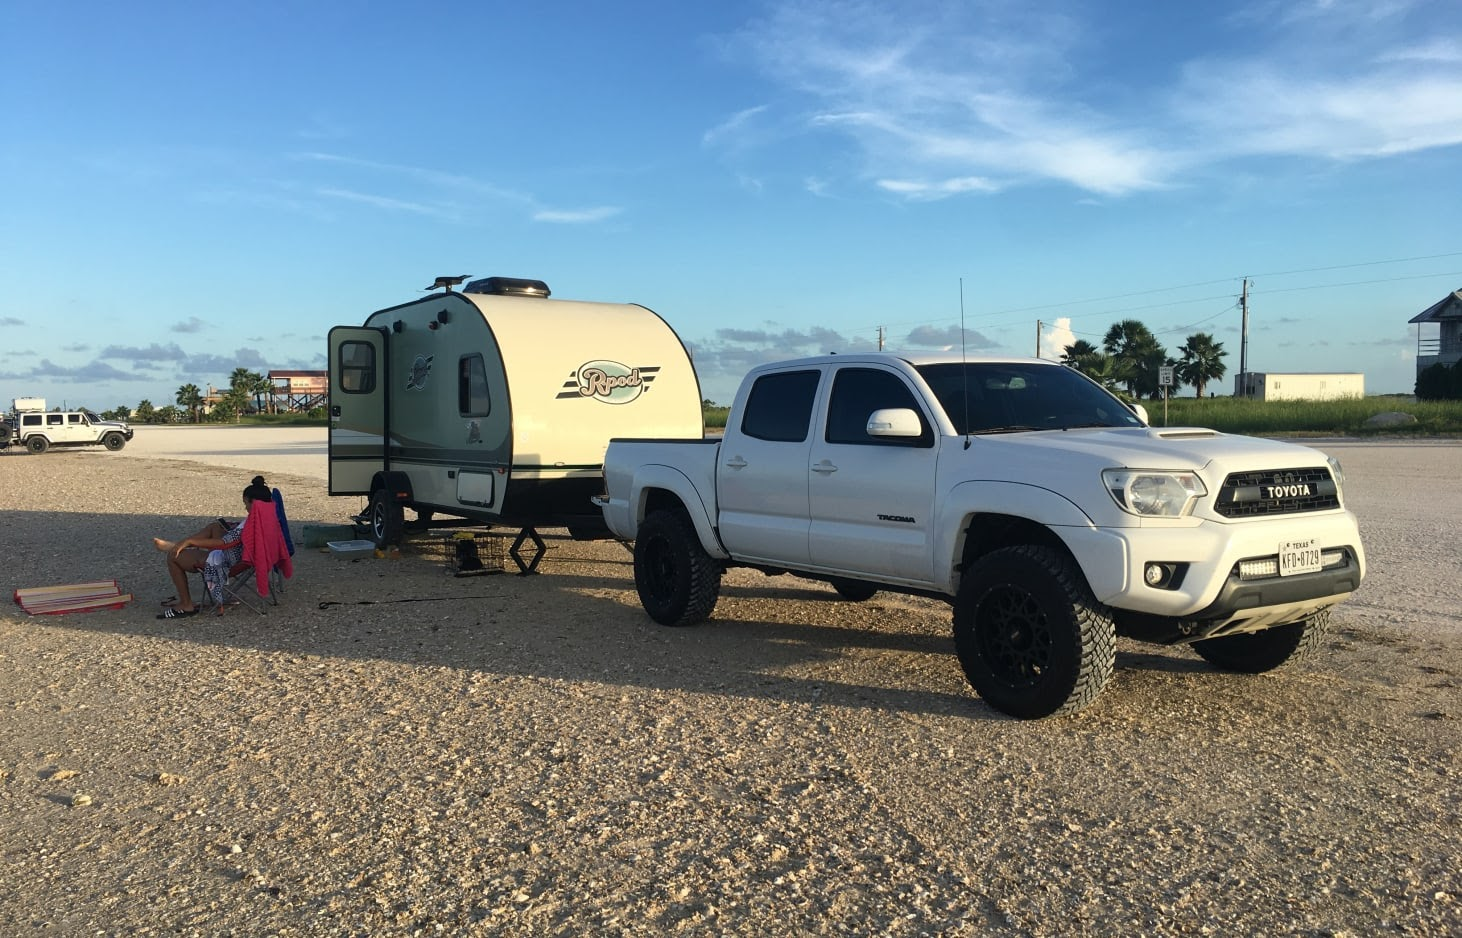 glamping in tx - this trailer sleeps 4